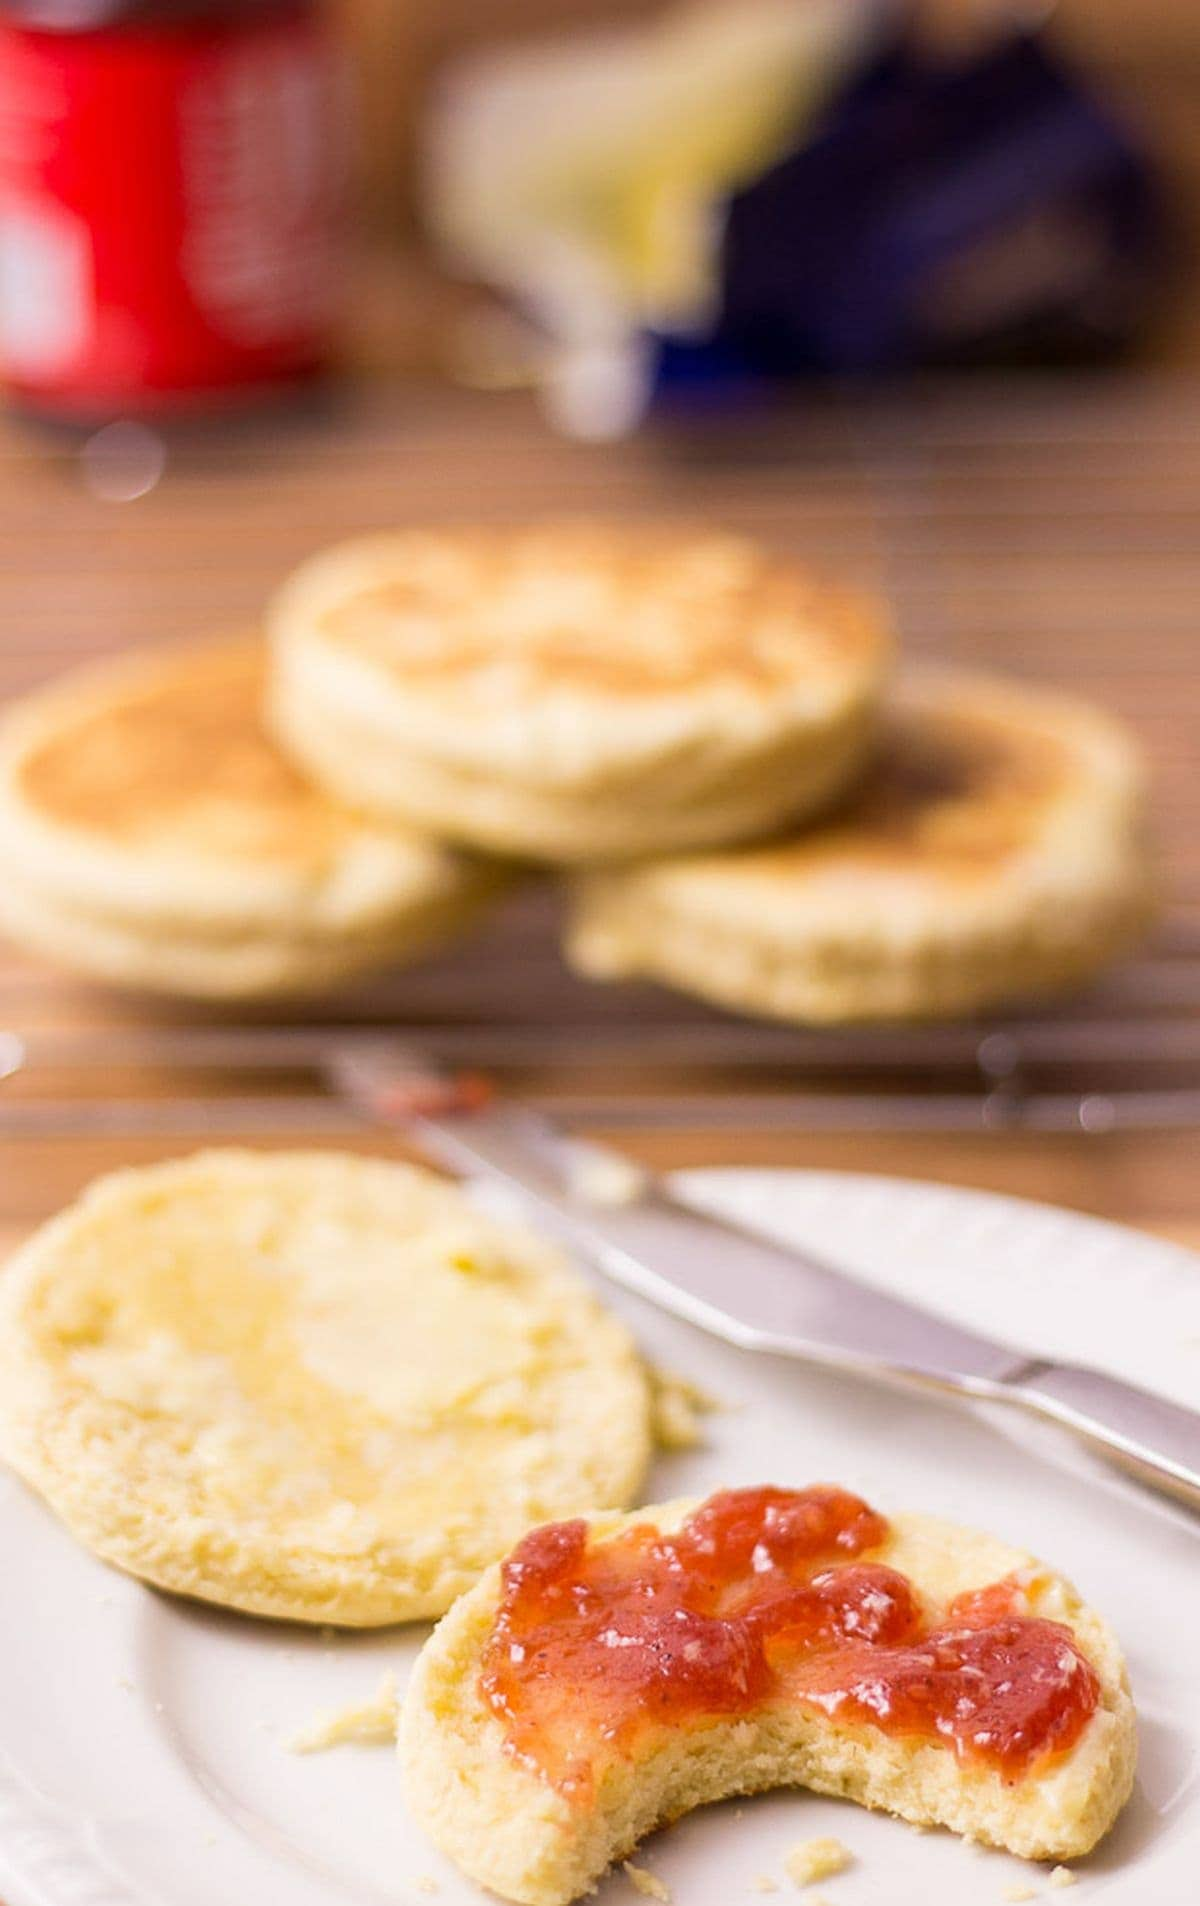 Two quick English muffins on a plate. One with jam on and a bite taken out. The rest of the muffins on a wire rack in the background.